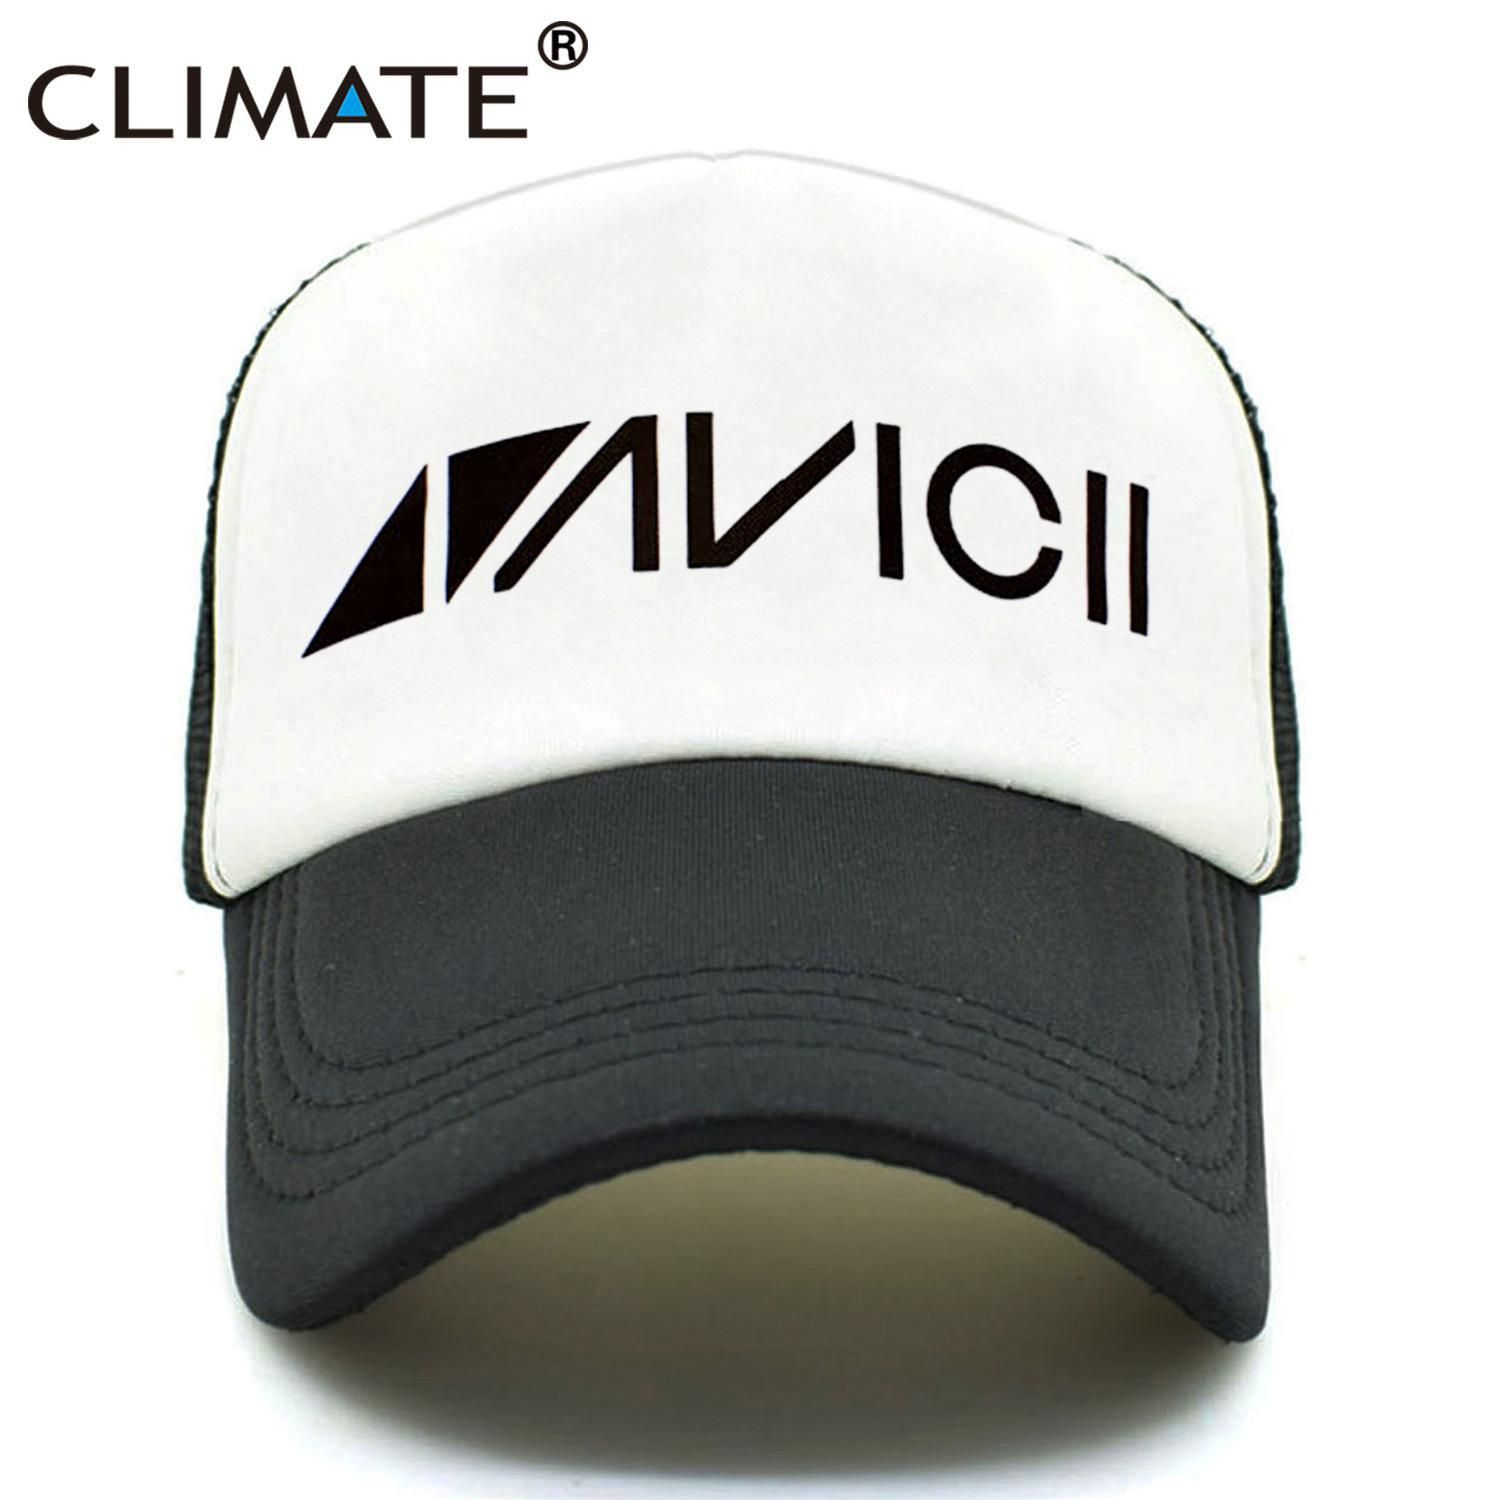 ec4f4b66d CLIMATE Men Women New Trucker Caps AVICII TRUE Caps Summer Hip Hop ...